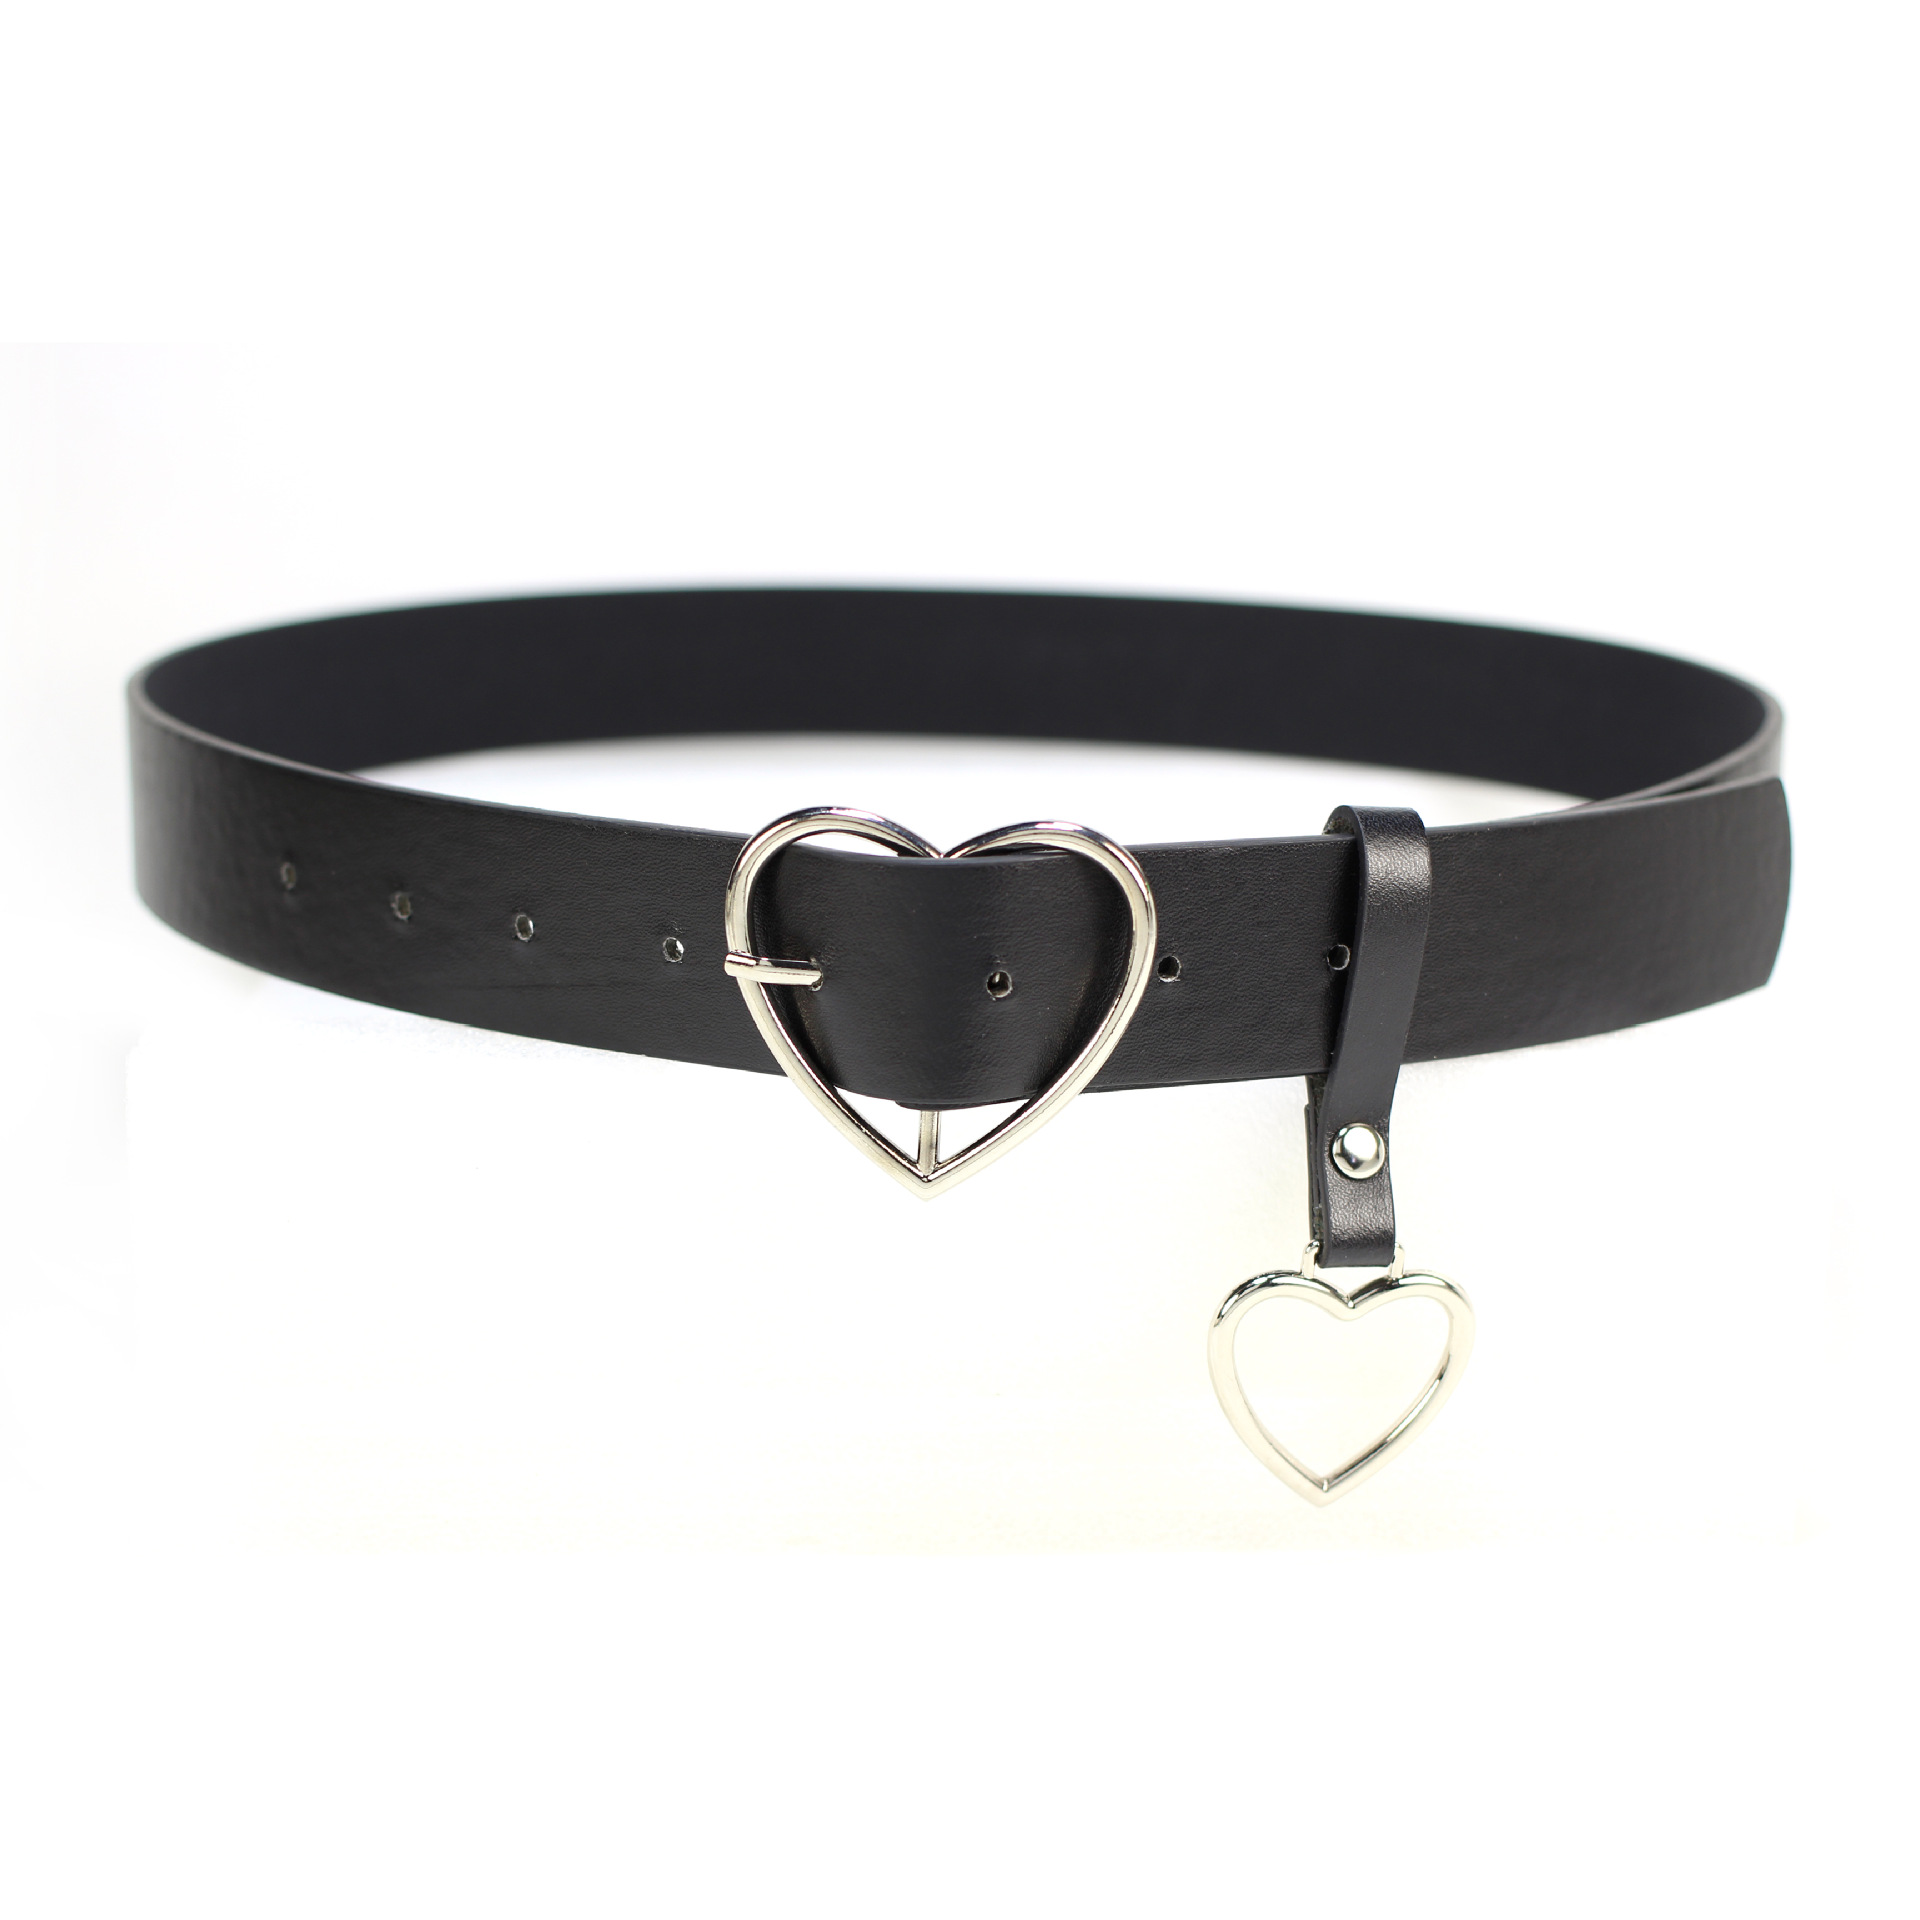 Heart Buckle Belt with Heart Strap (2 Colours) - Ice Cream Cake